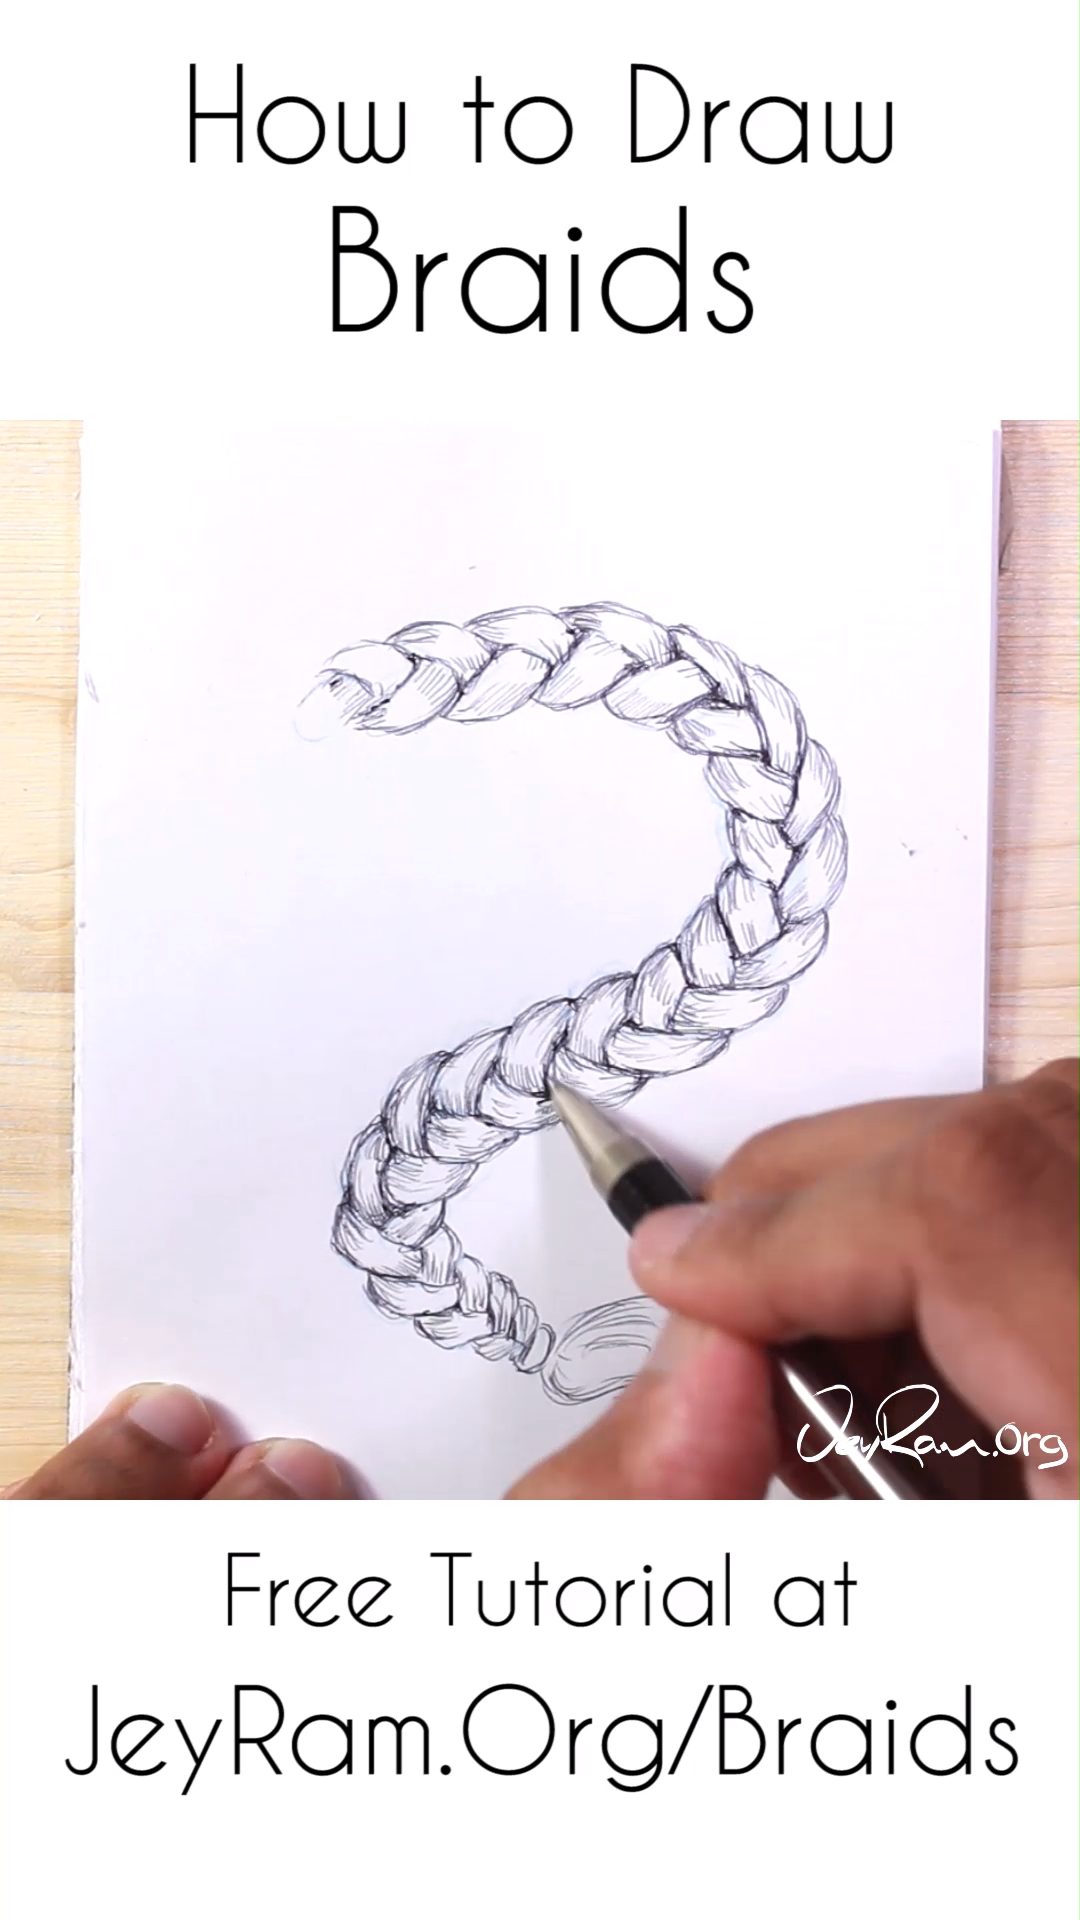 How To Draw Braids Easy Tutorial For Beginners Video How To Draw Braids How To Draw Hair How To Draw Anime Hair